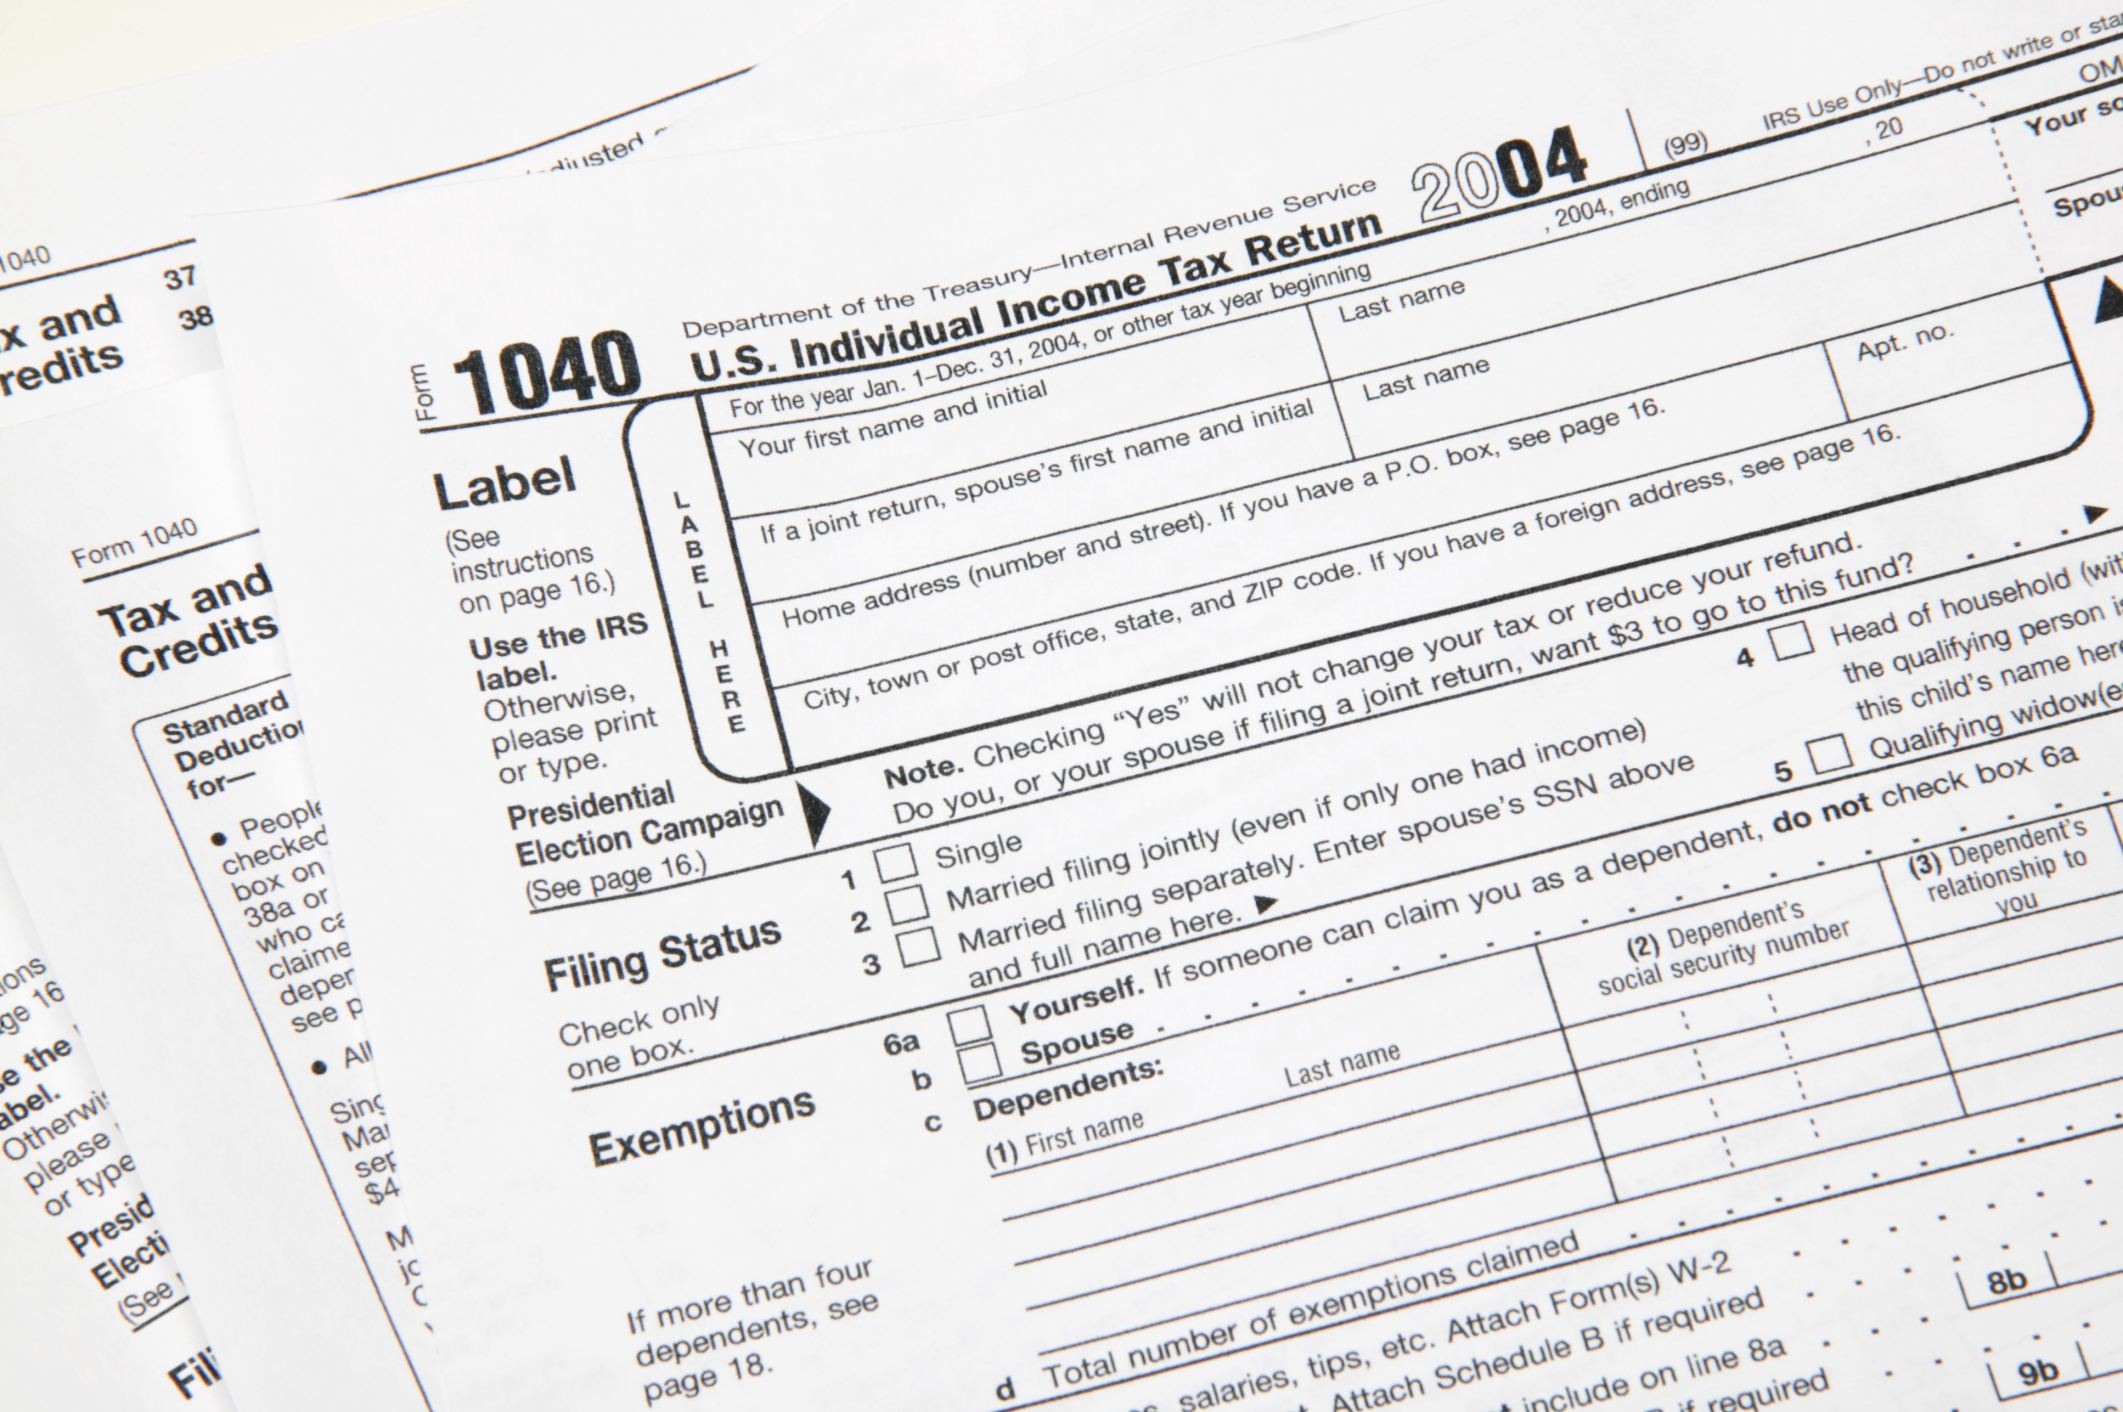 How Can I See if My E-Filed Tax Return Was Received